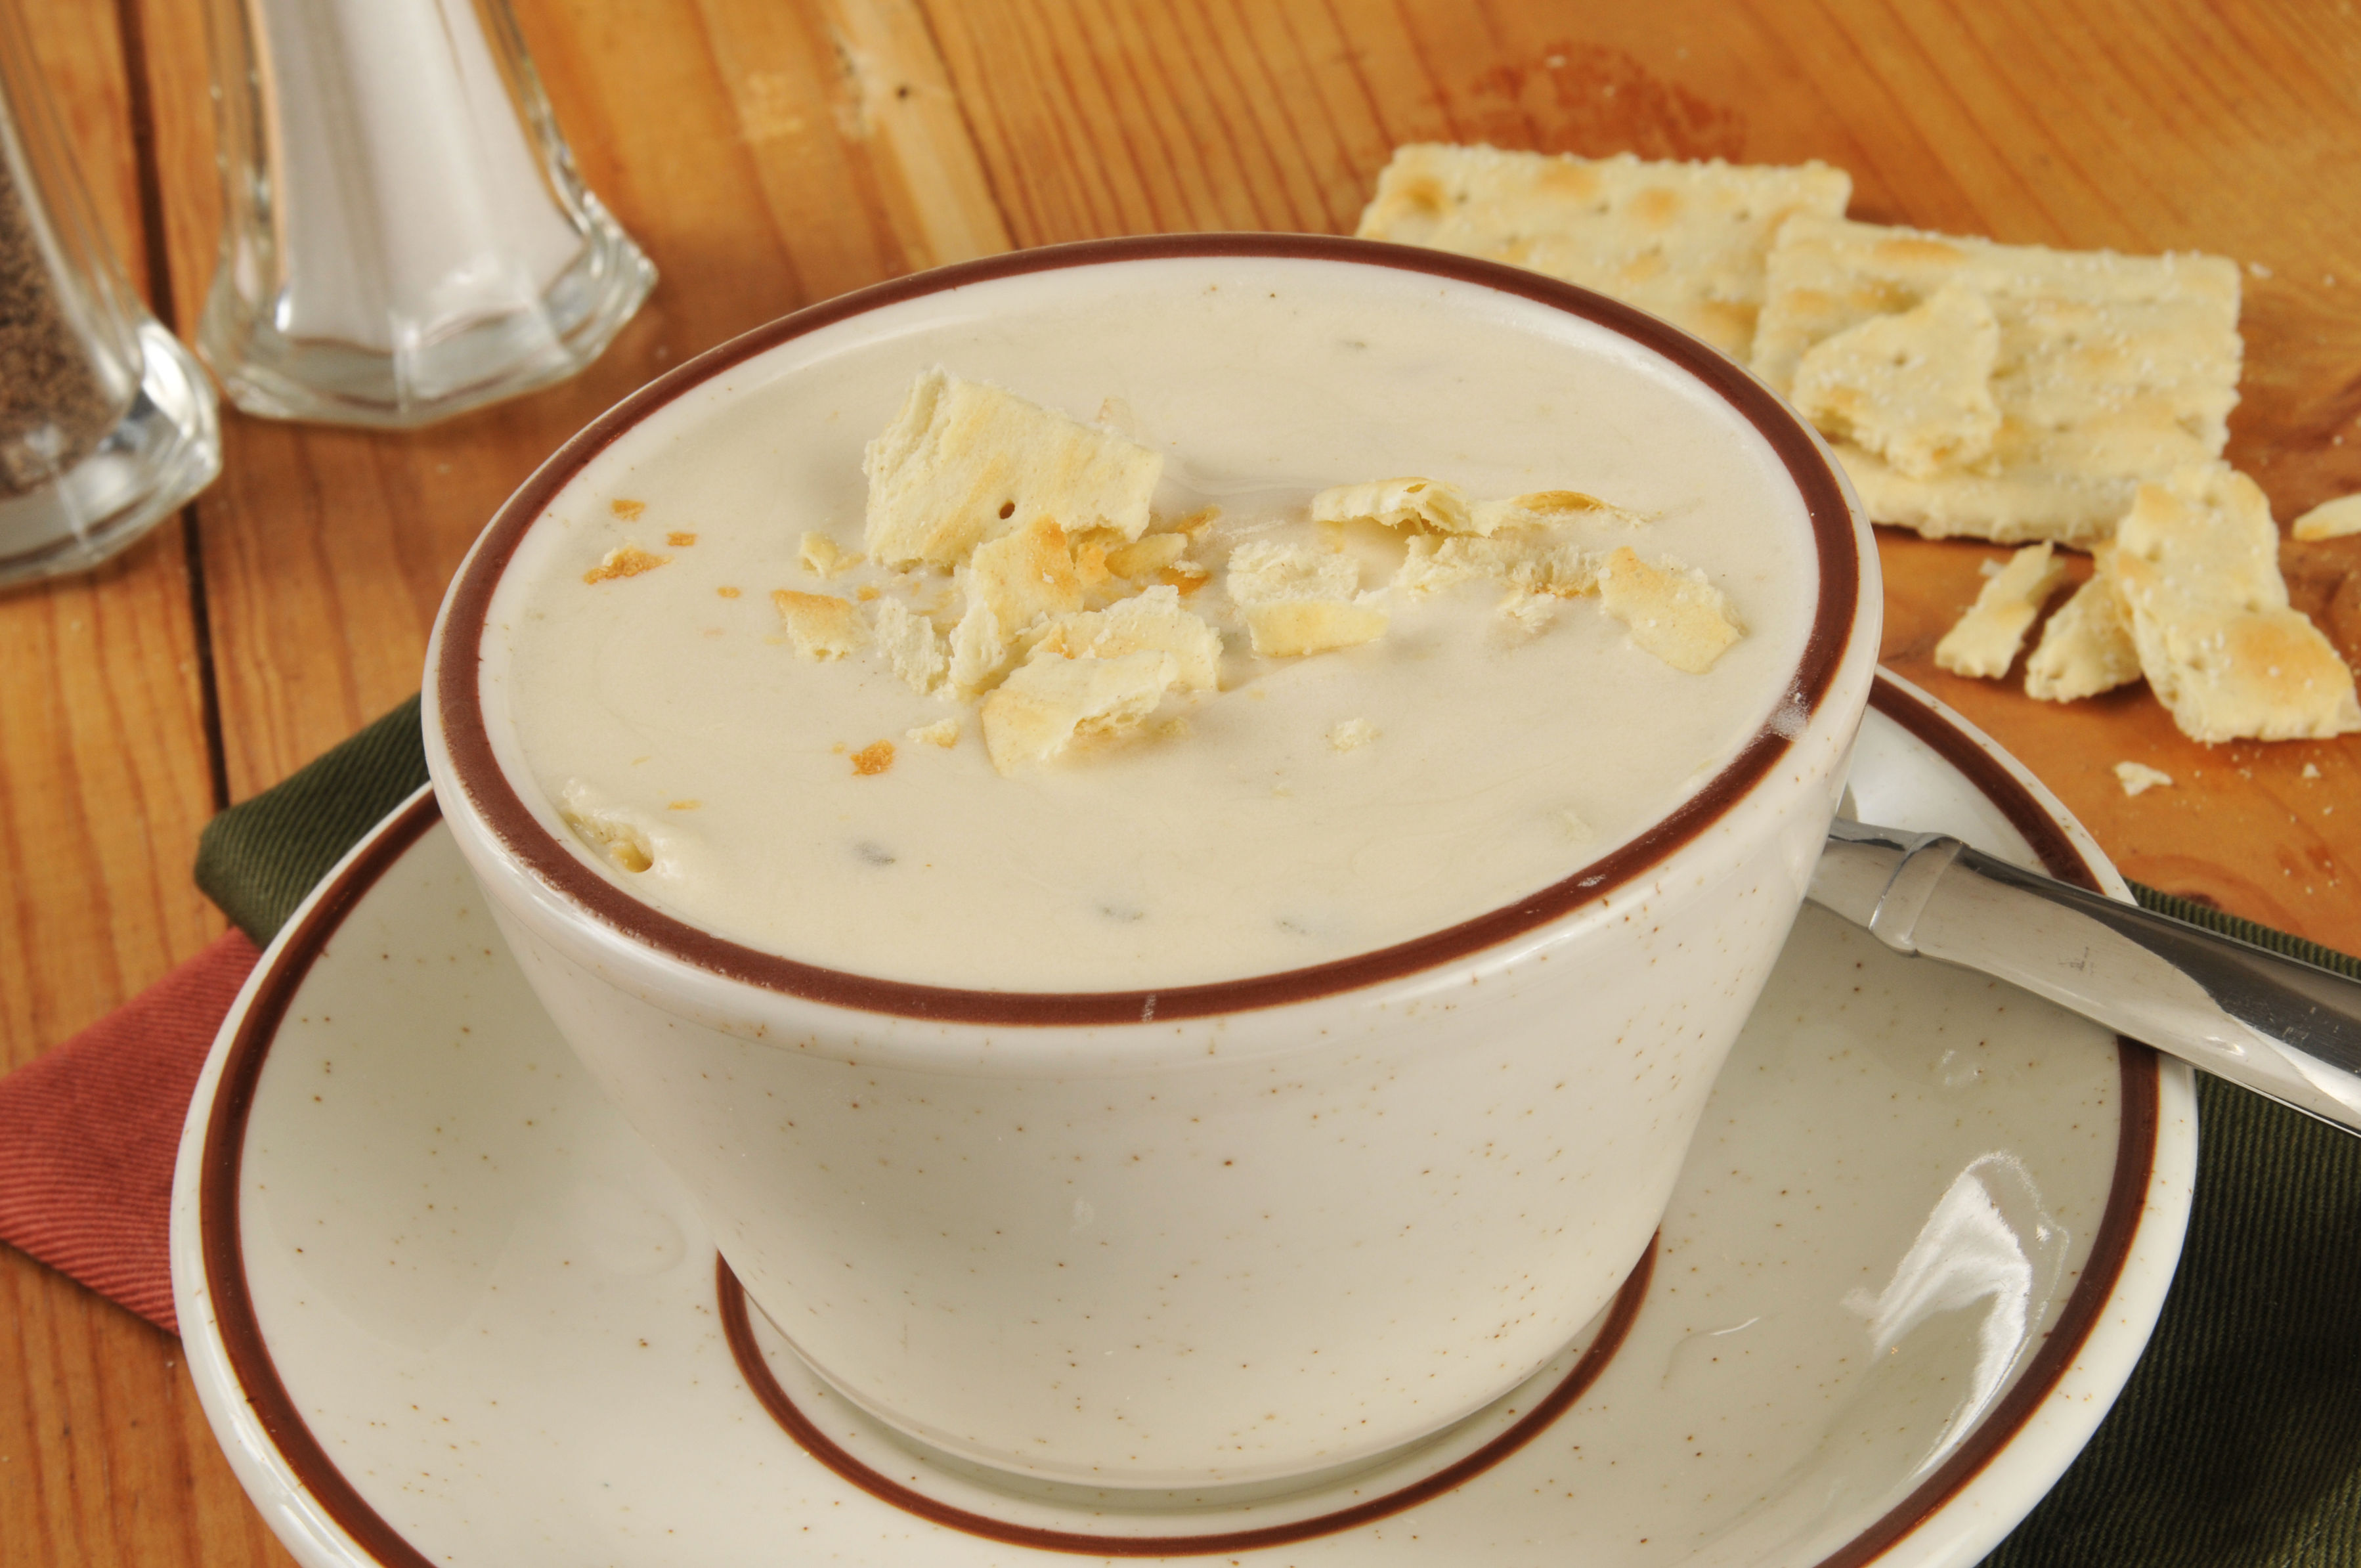 New england clam chowder recipe without bacon